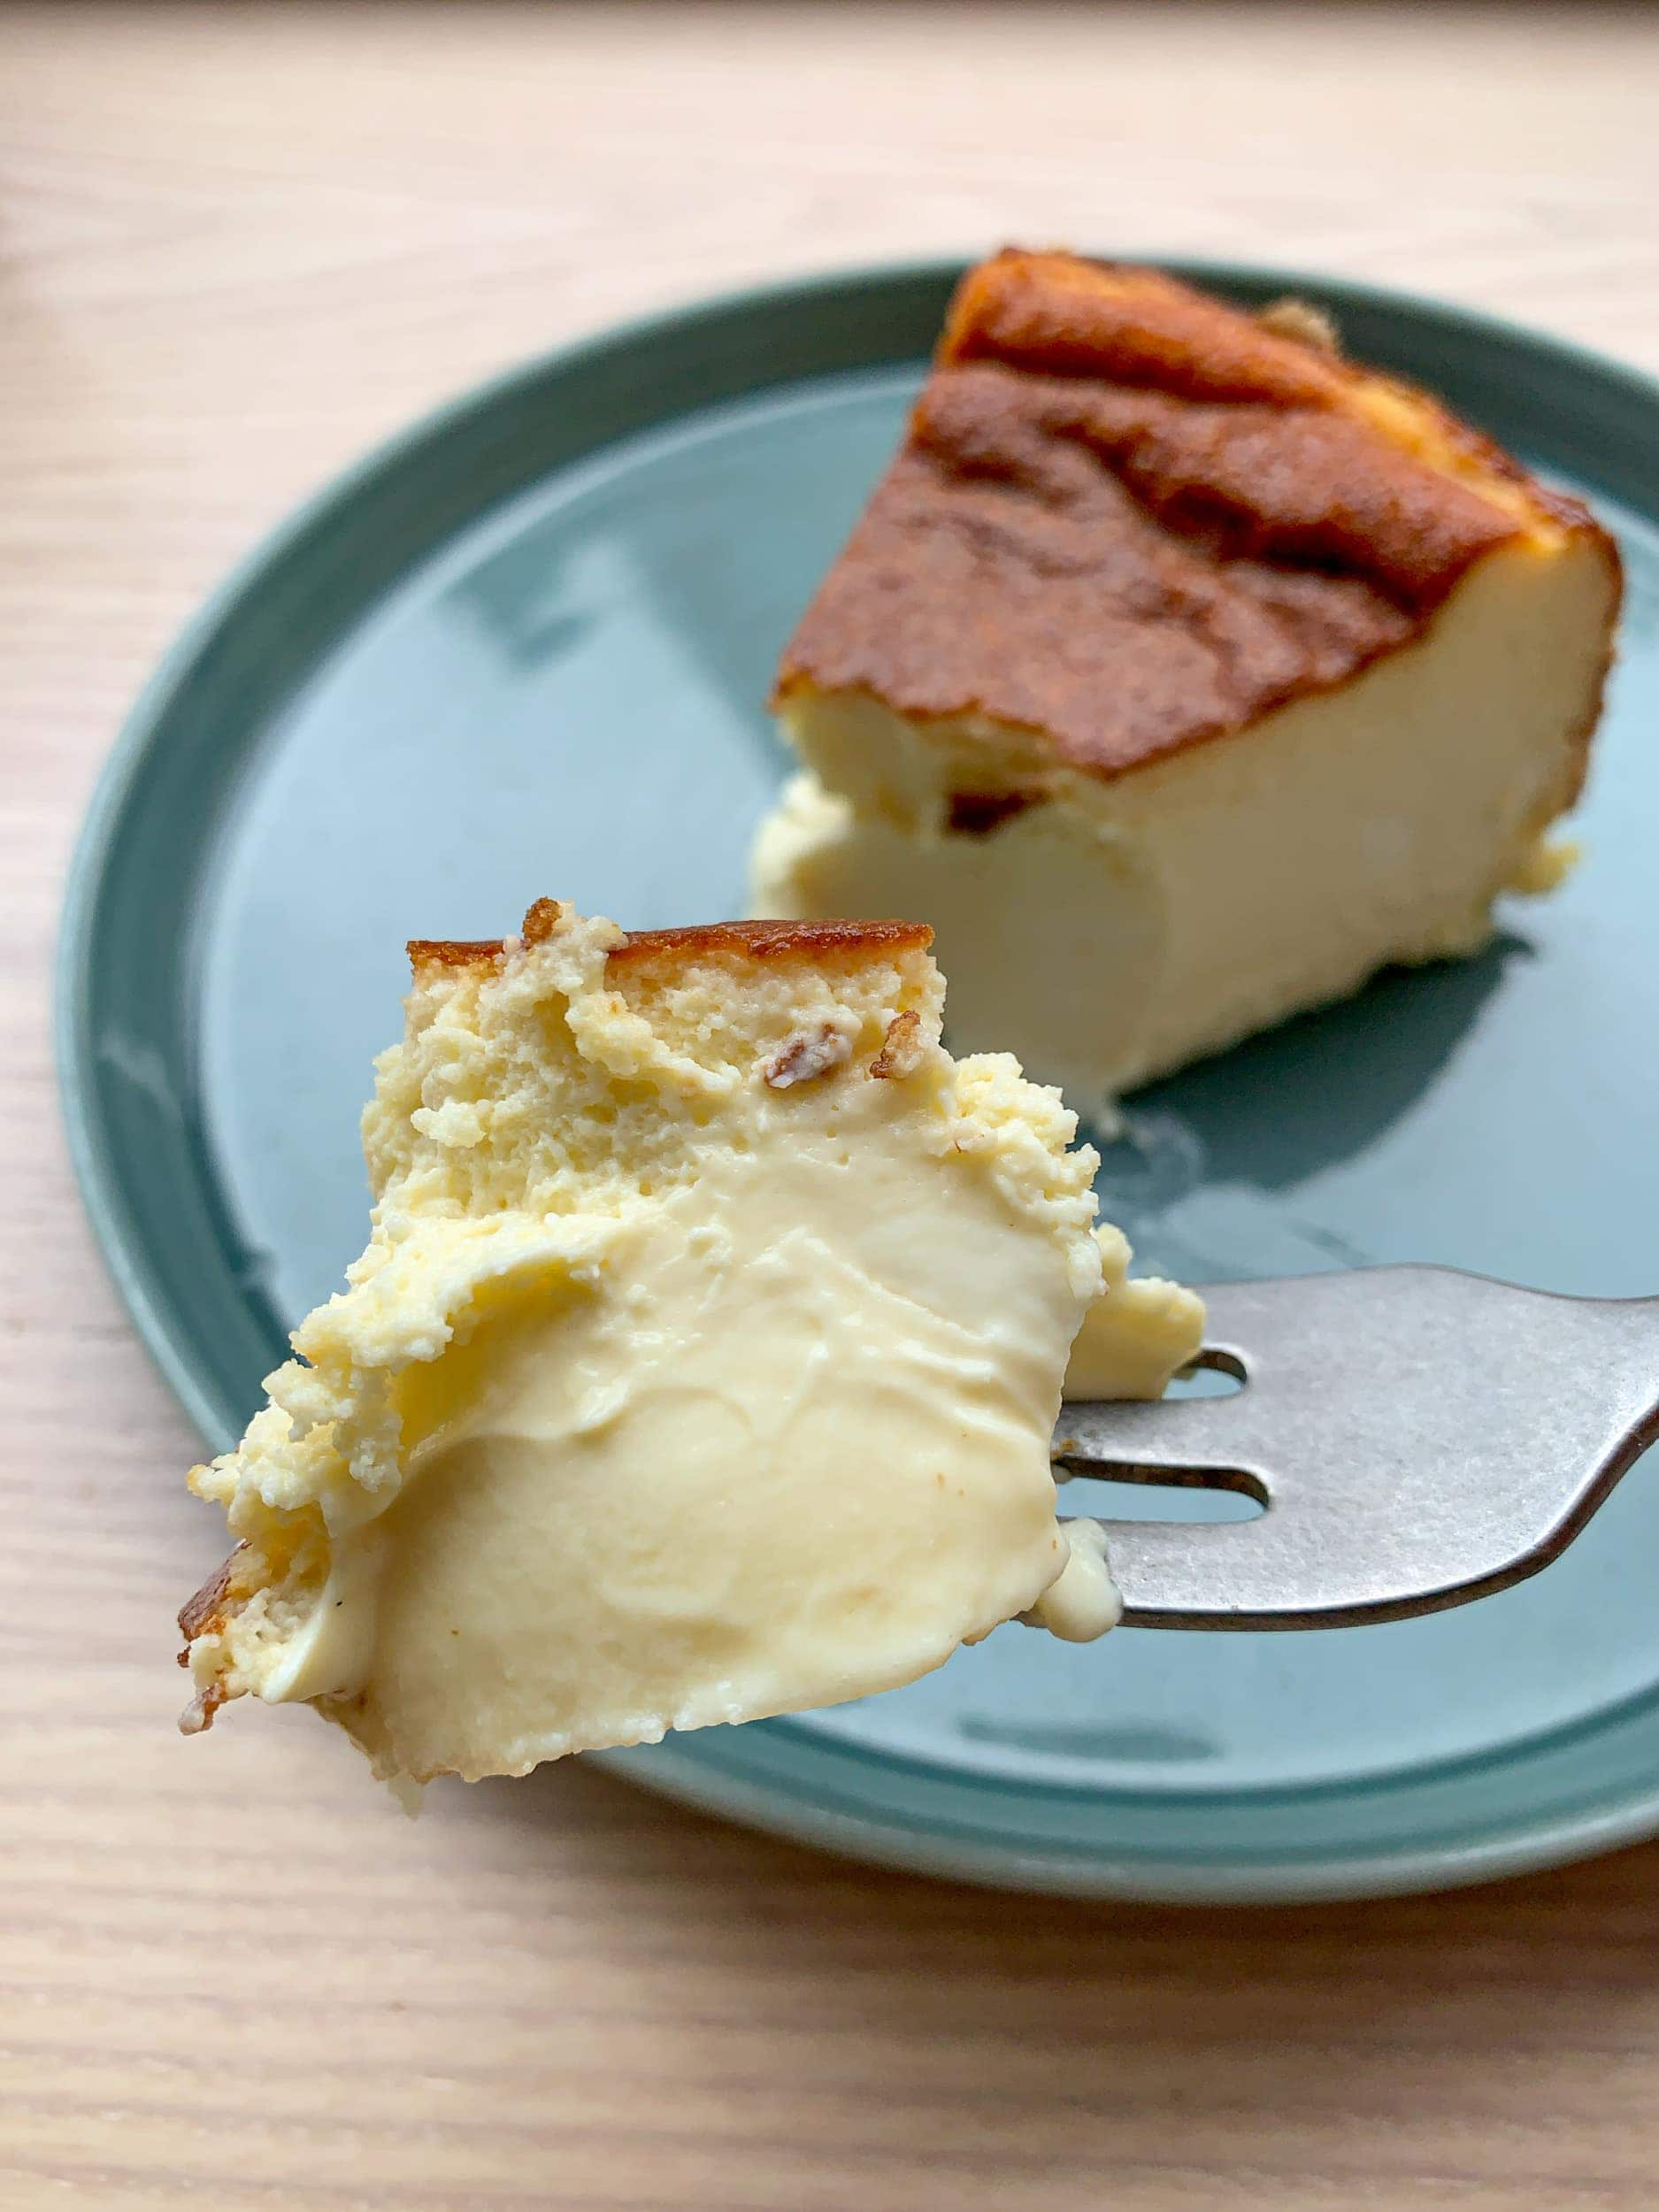 This Basque cheesecake was one of the best desserts I ate all year